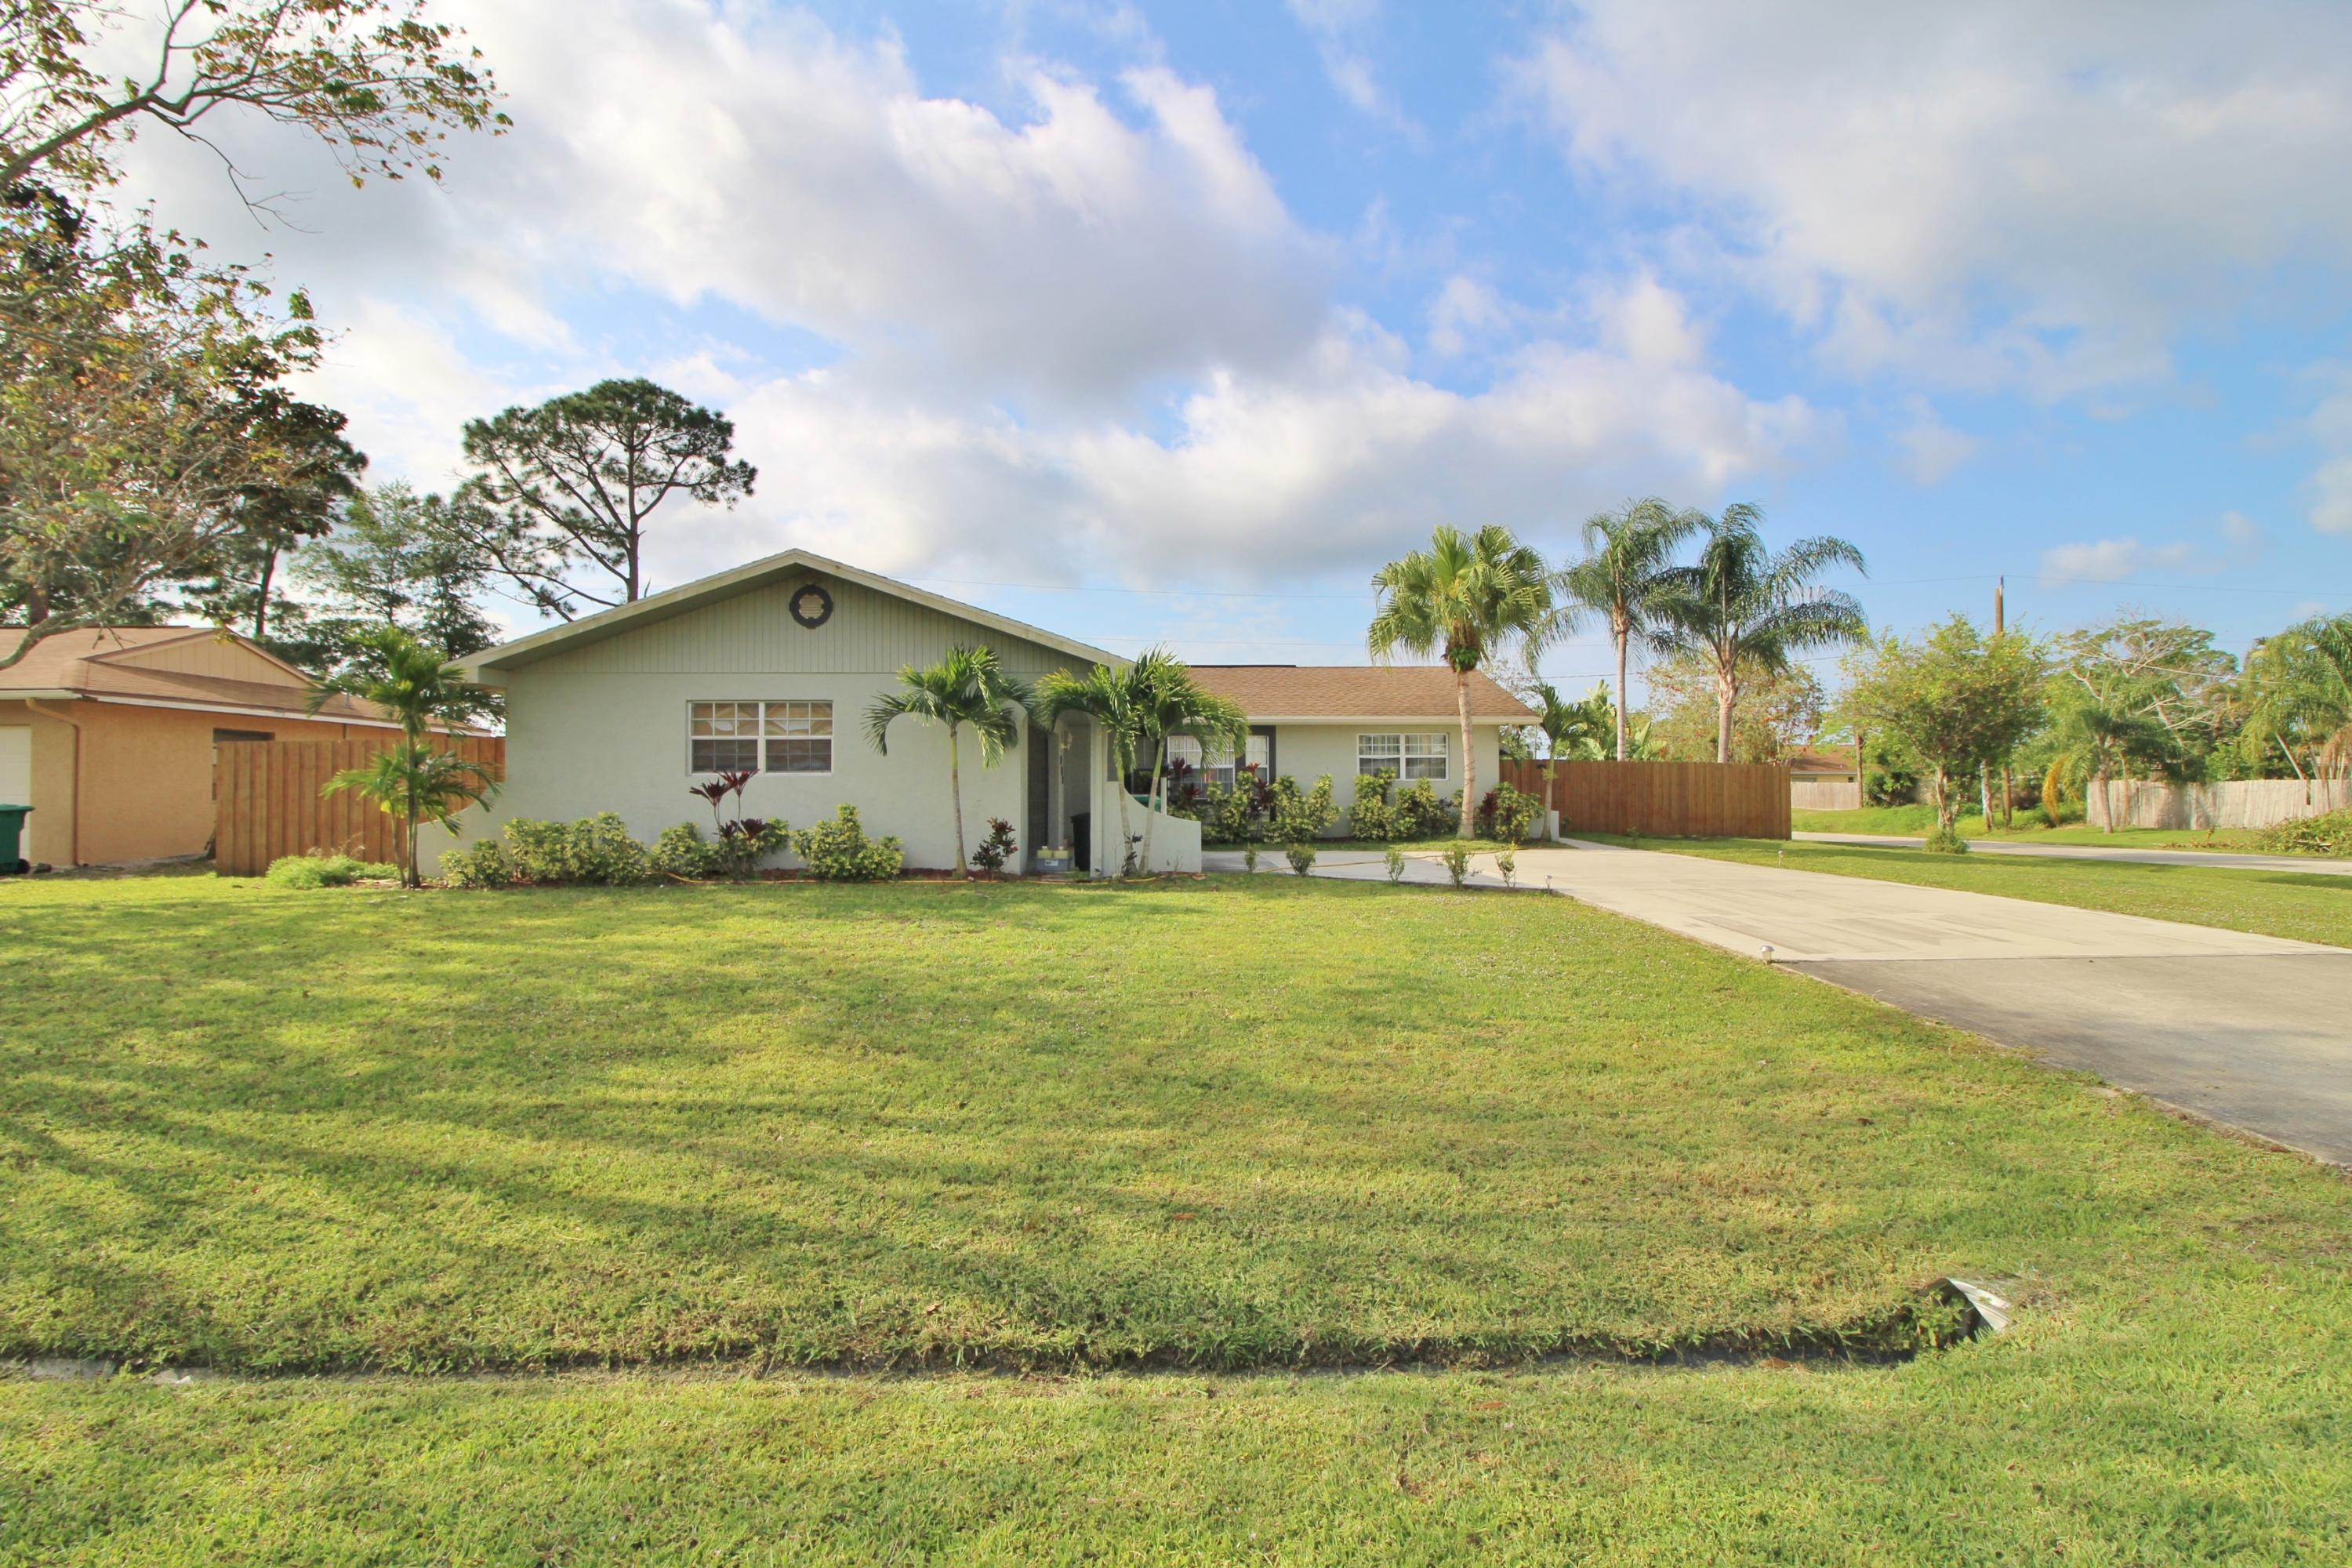 Photo of home for sale at 802 Evergreen Terrace SE, Port Saint Lucie FL